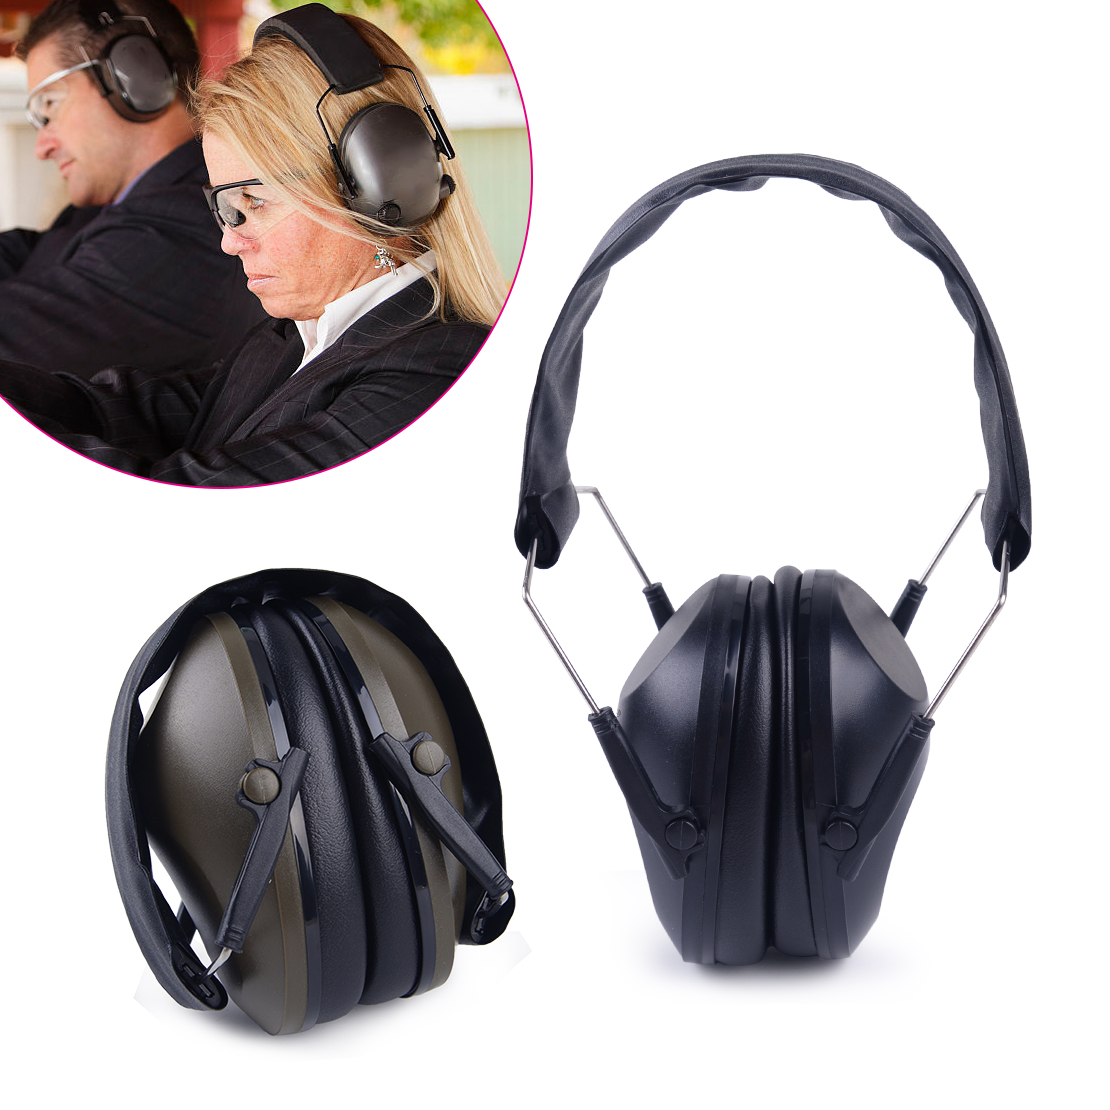 Defenders Muffs Headband Noise Hearing Ear Protection-New Adjustable Earmuffs